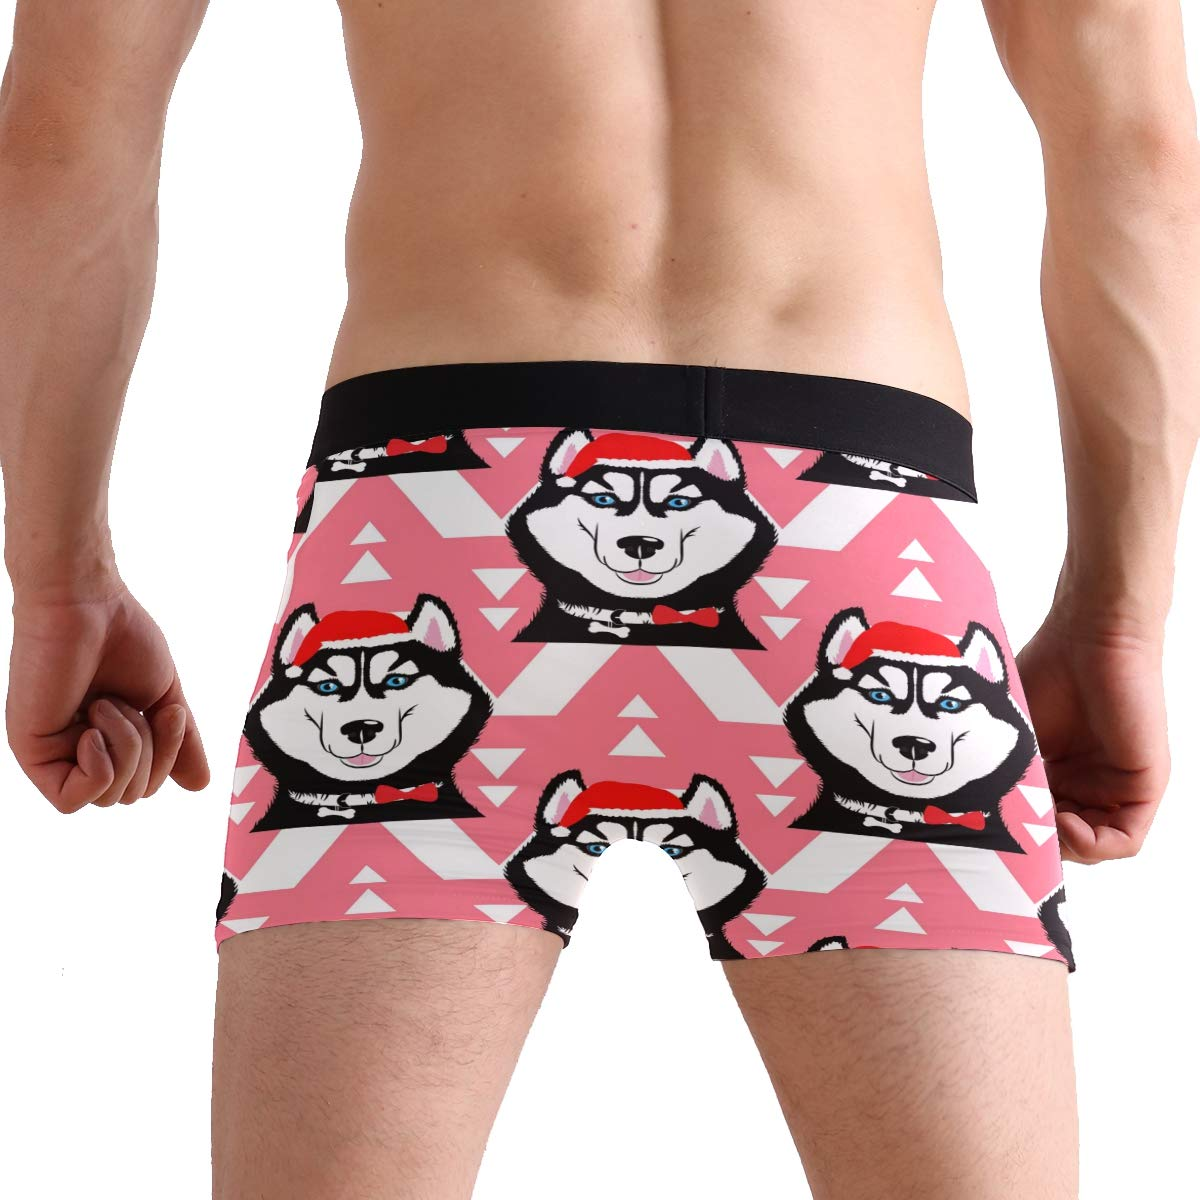 ZZKKO Christmas Husky Dog Mens Boxer Briefs Underwear Breathable Stretch Boxer Trunk with Pouch S-XL